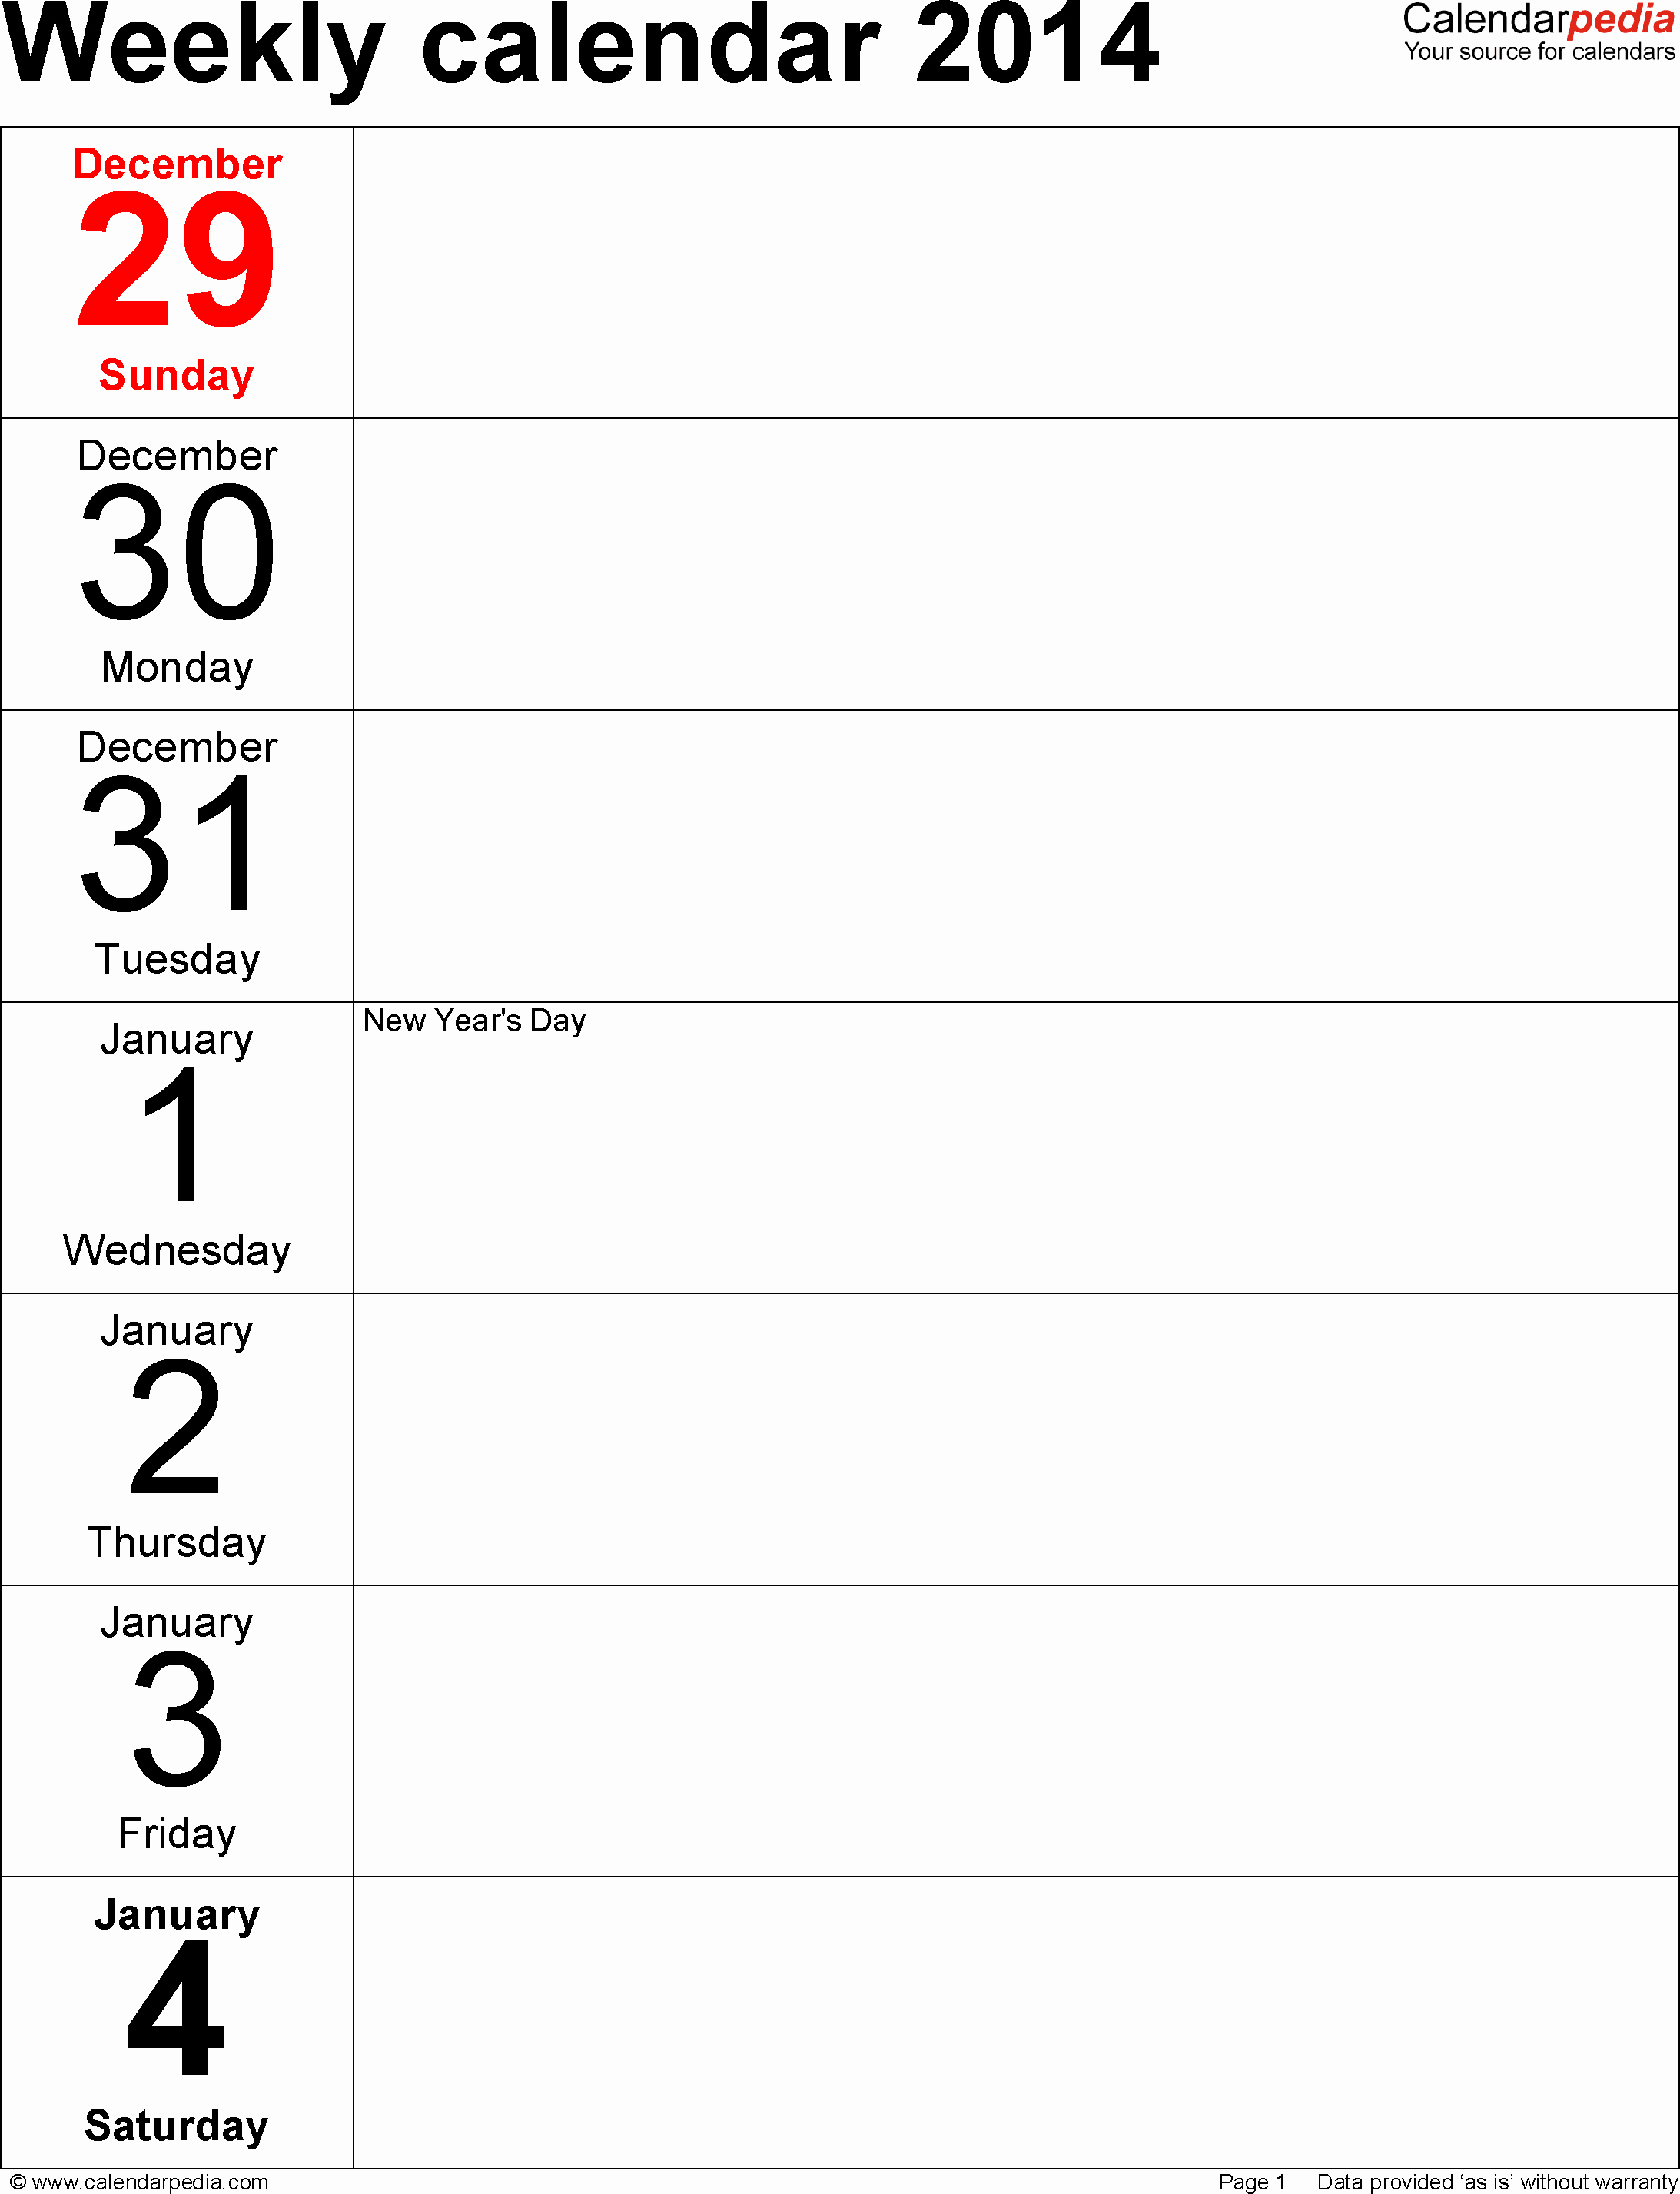 Microsoft Word Weekly Calendar Template Fresh Weekly Calendar 2014 for Word 4 Free Printable Templates